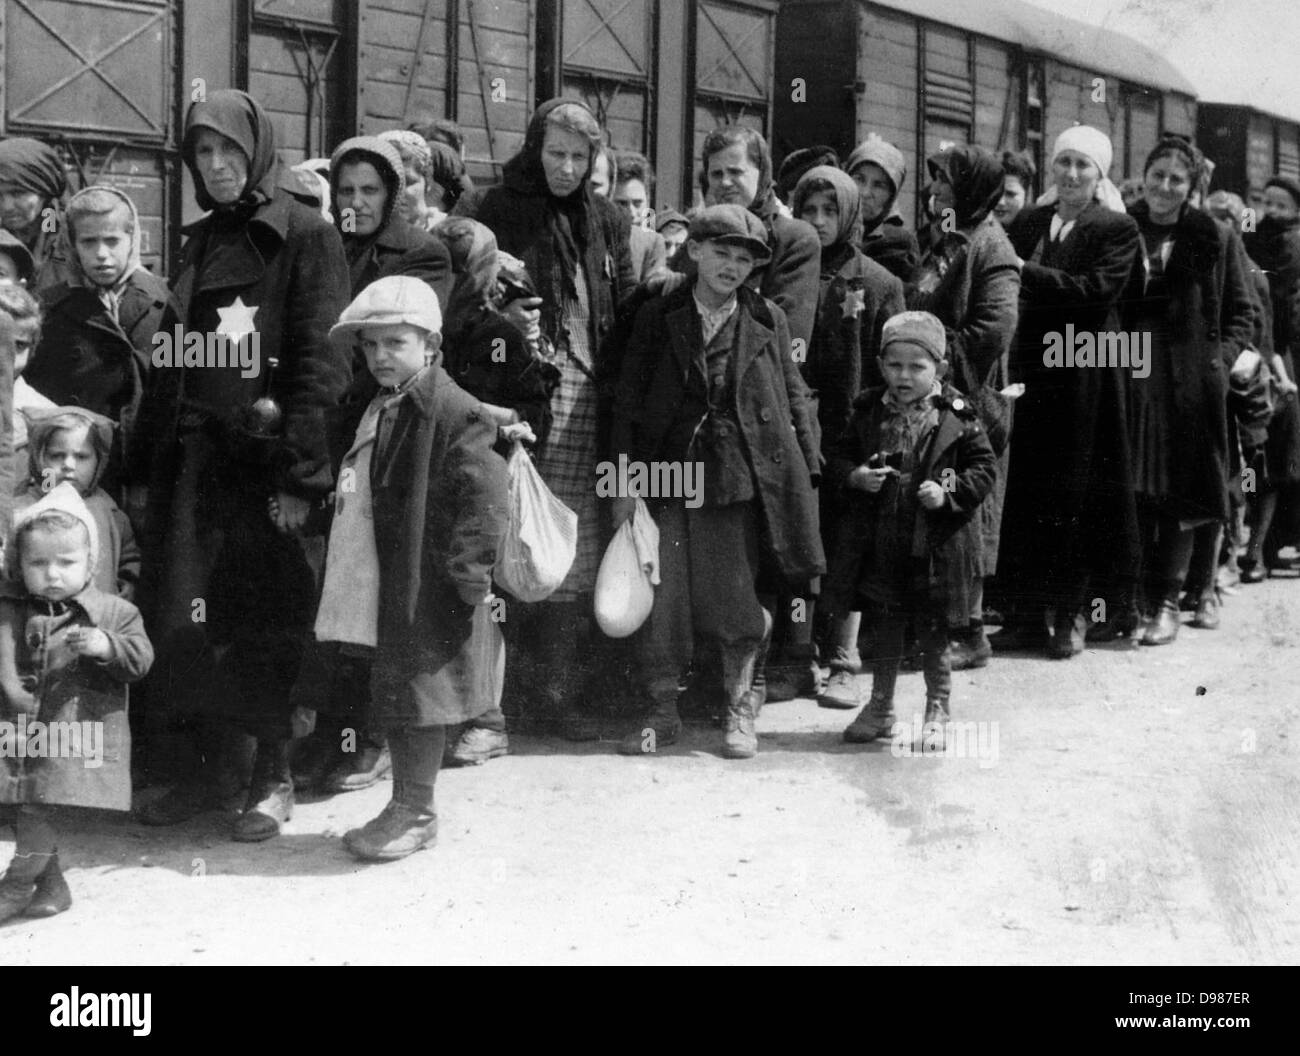 Arrival of a train containing Jews deported to Auschwitz death camp in Poland. Auschwitz-Birkenau (1940-1945) was - Stock Image